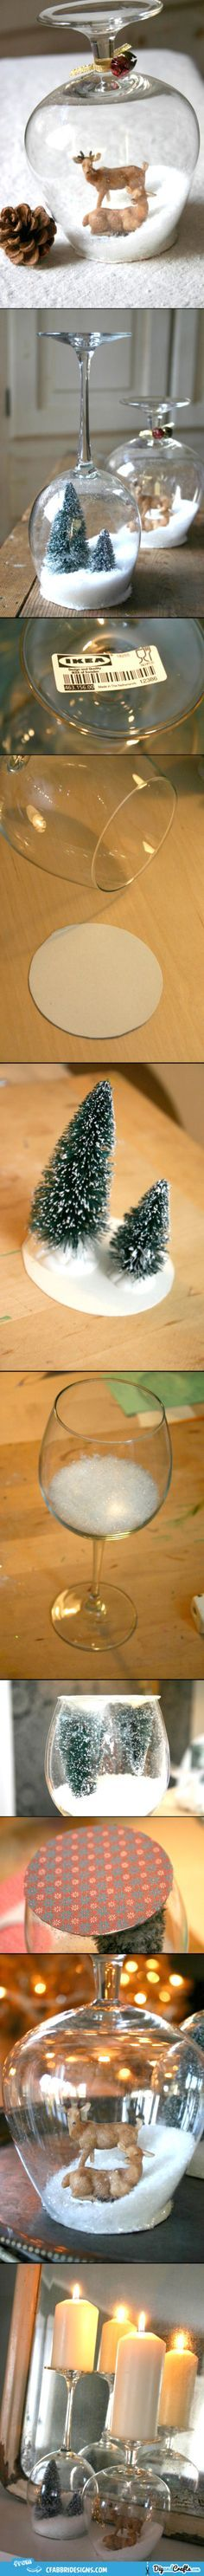 Stemware ~~ Snow Globes DIY Good way to use those wine glasses that are in a box somewhere